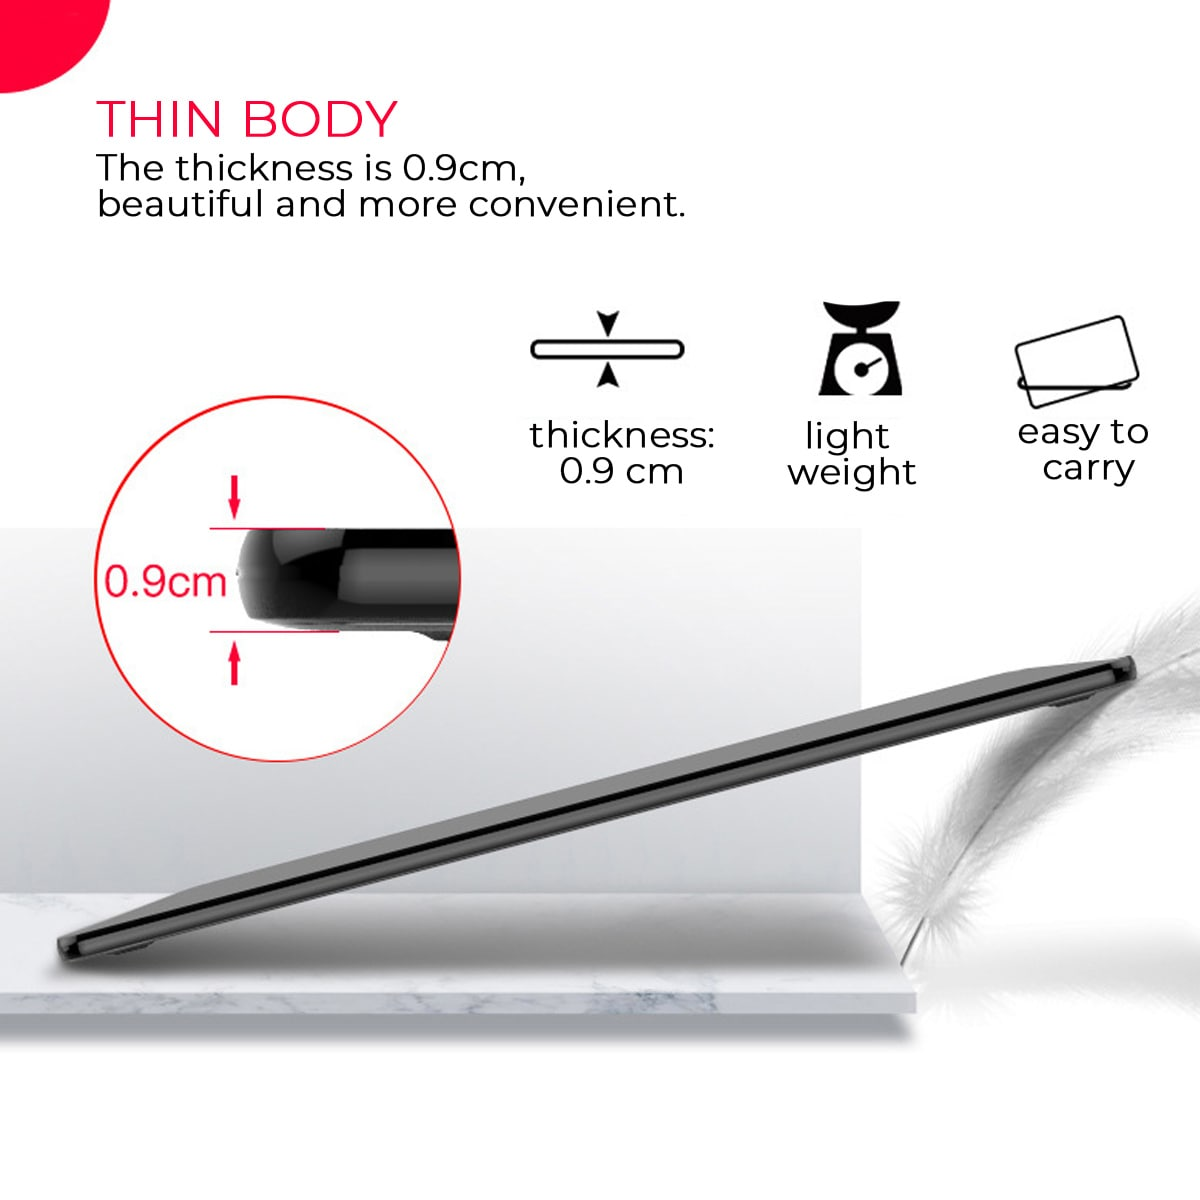 graphic tablet body